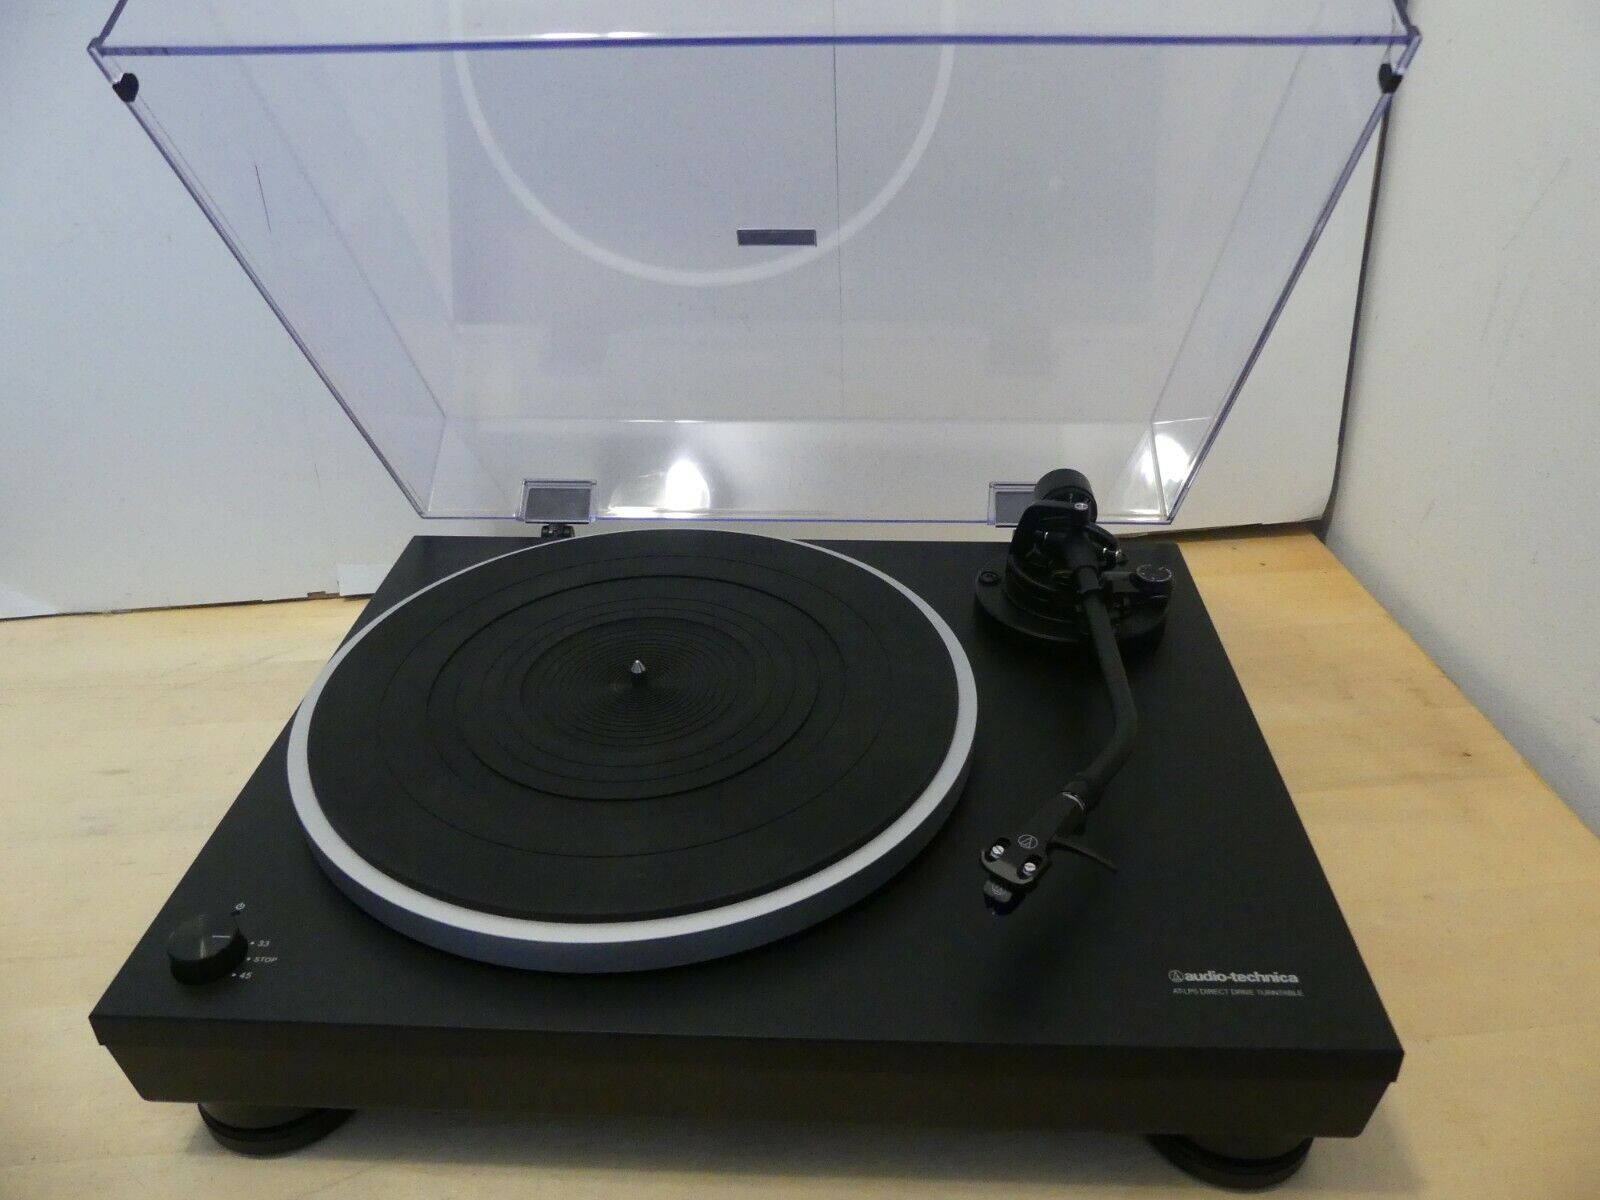 Audio-Technica AT-Lp5 Direct Drive Turntable. Buy it now for 389.00